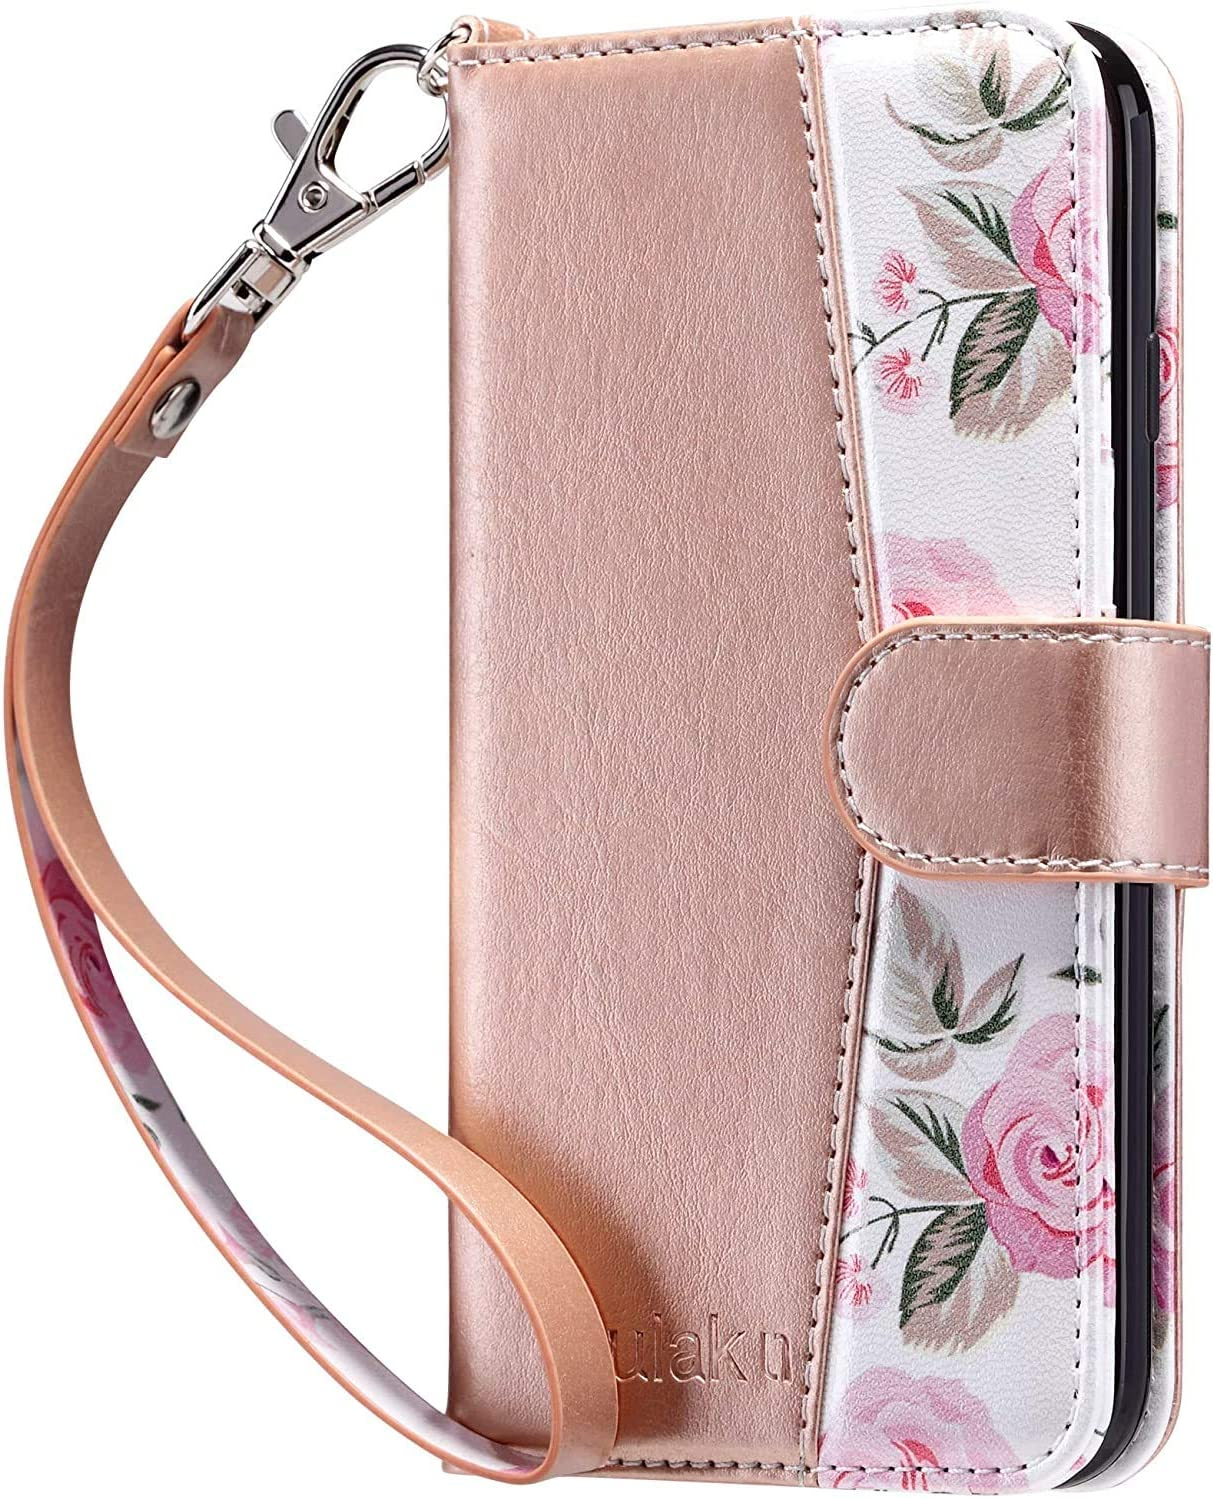 ULAK iPhone XR Wallet Case, Premium PU Leather Flip Folio Case with Card Holders Kickstand Hand Strap Shockproof Protective Cover for iPhone XR 6.1 inch, Rose Gold